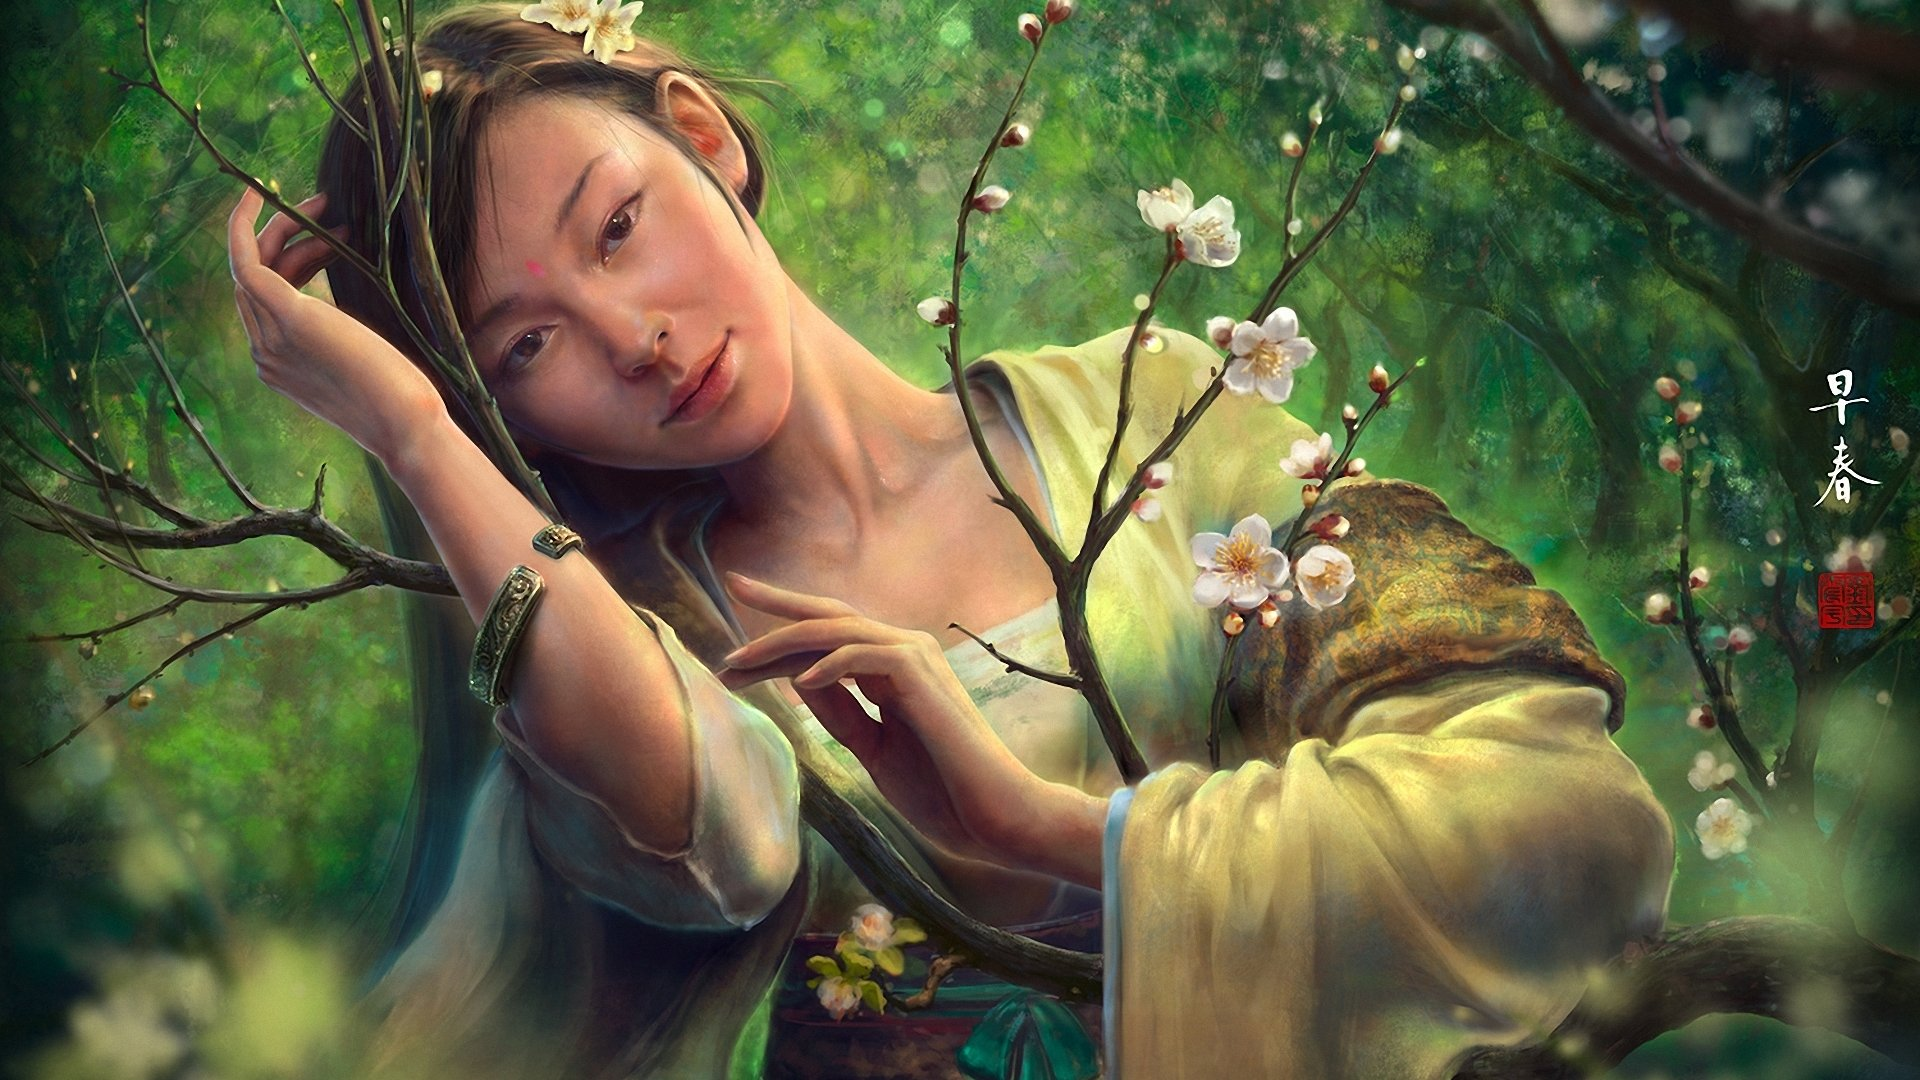 fantasy-girl-oriental-asian-chinese-peach-flowerearly-spring-bracelet-blossoms-1920x1080